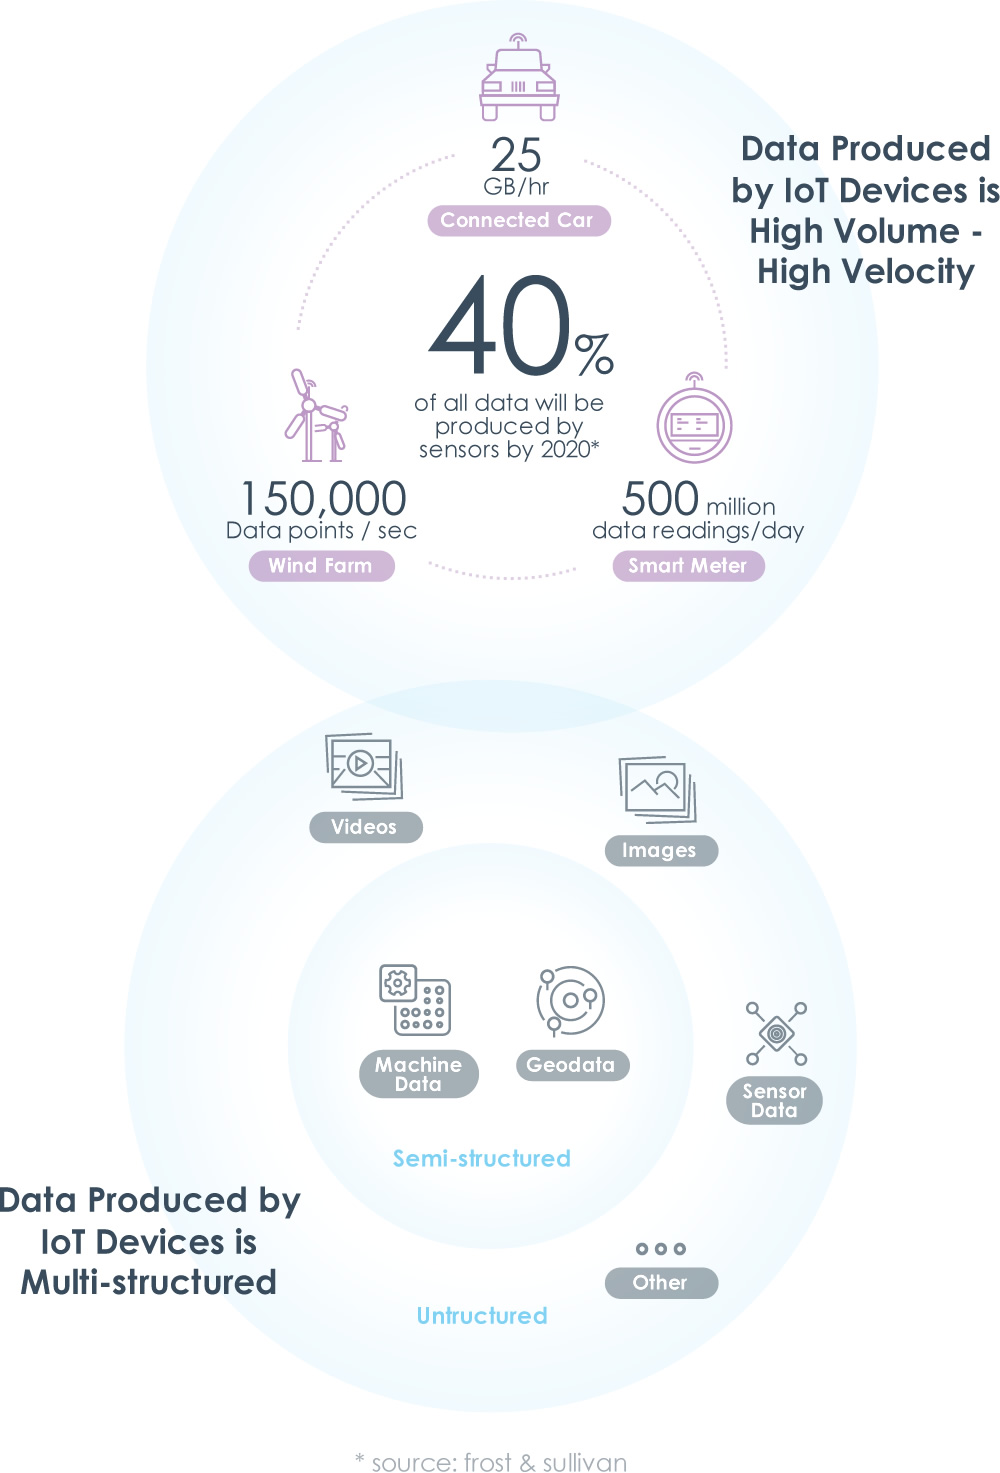 Data Produced by IoT devices is high volume / high velocity and multi-structured